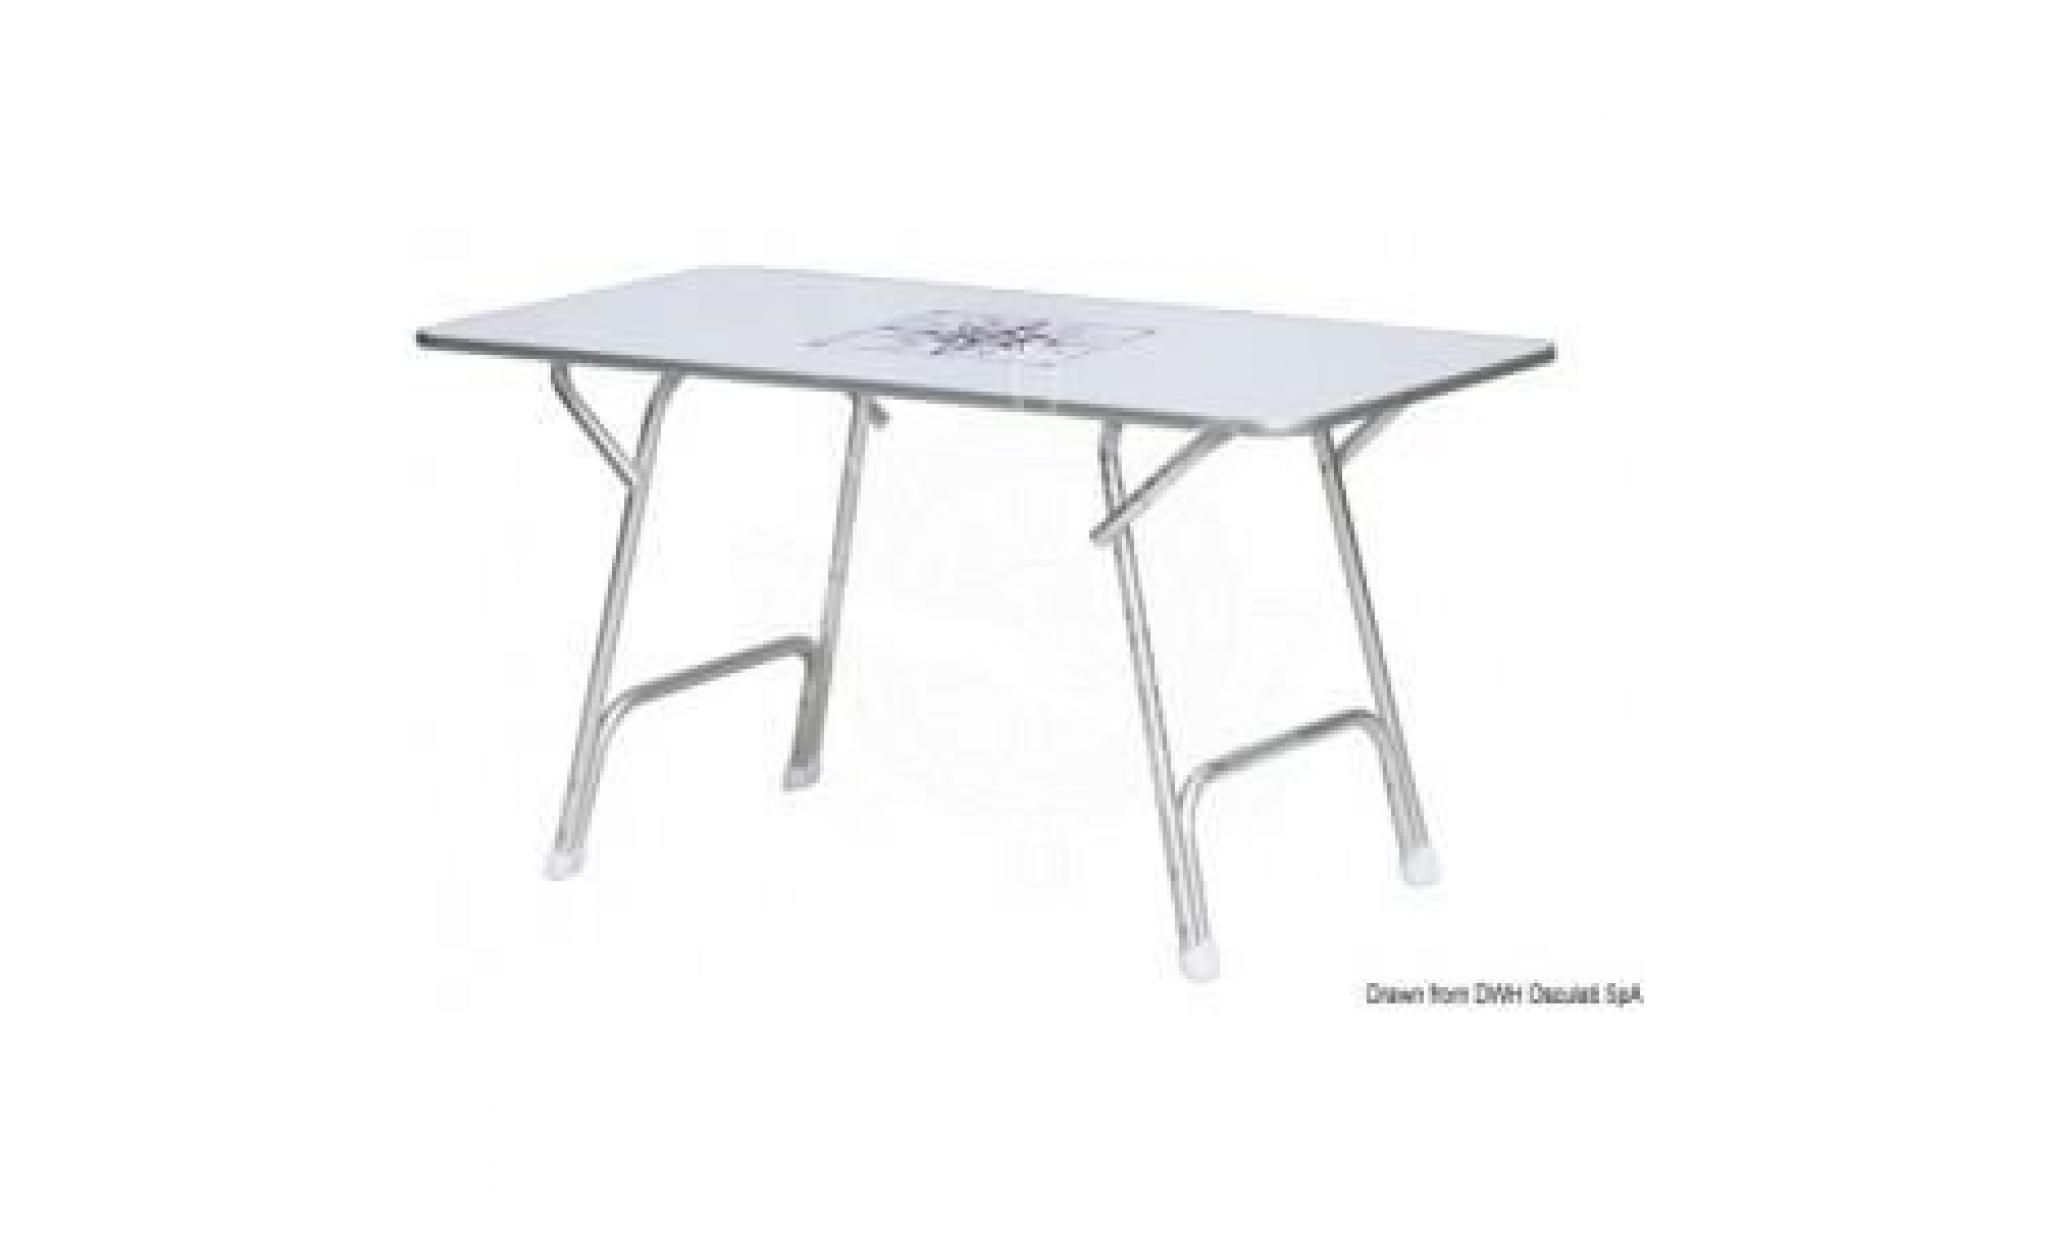 Table Pliante De Table Haute De Haute Qualité Table Qualité Pliante UVqSMpz